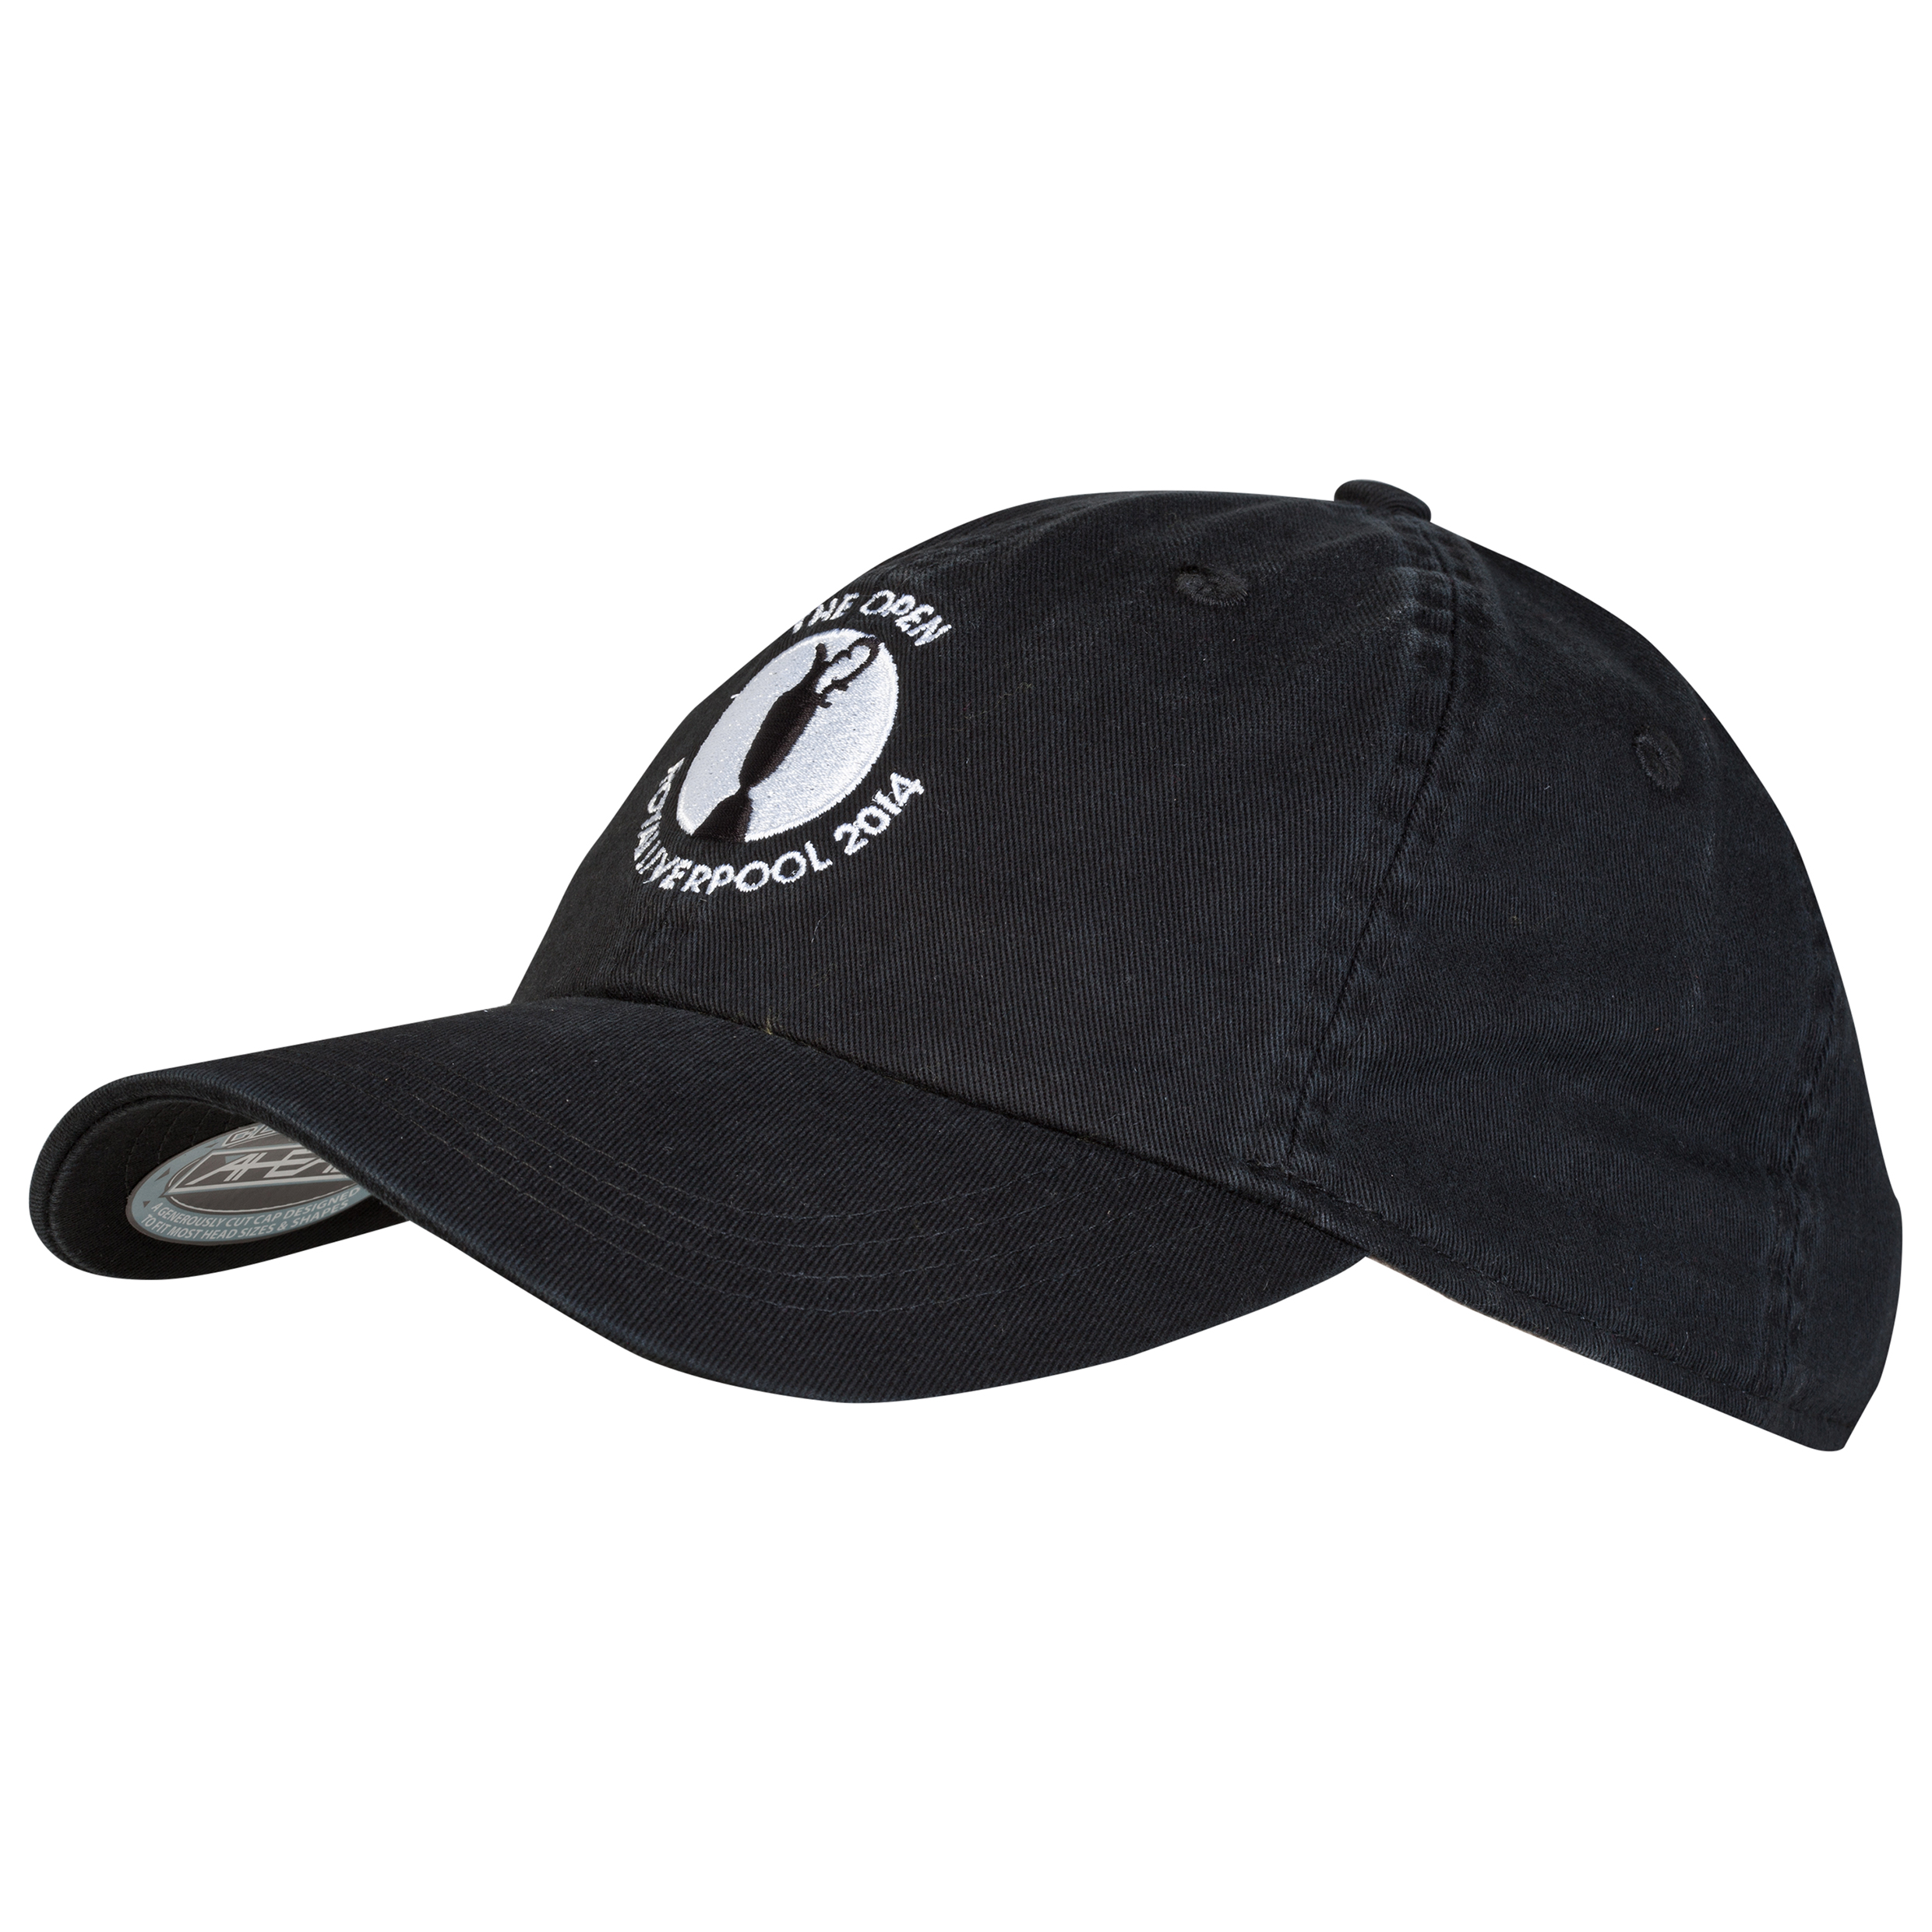 The Open Championship Royal Liverpool 2014 Classic Solid Unstructured Cap Black